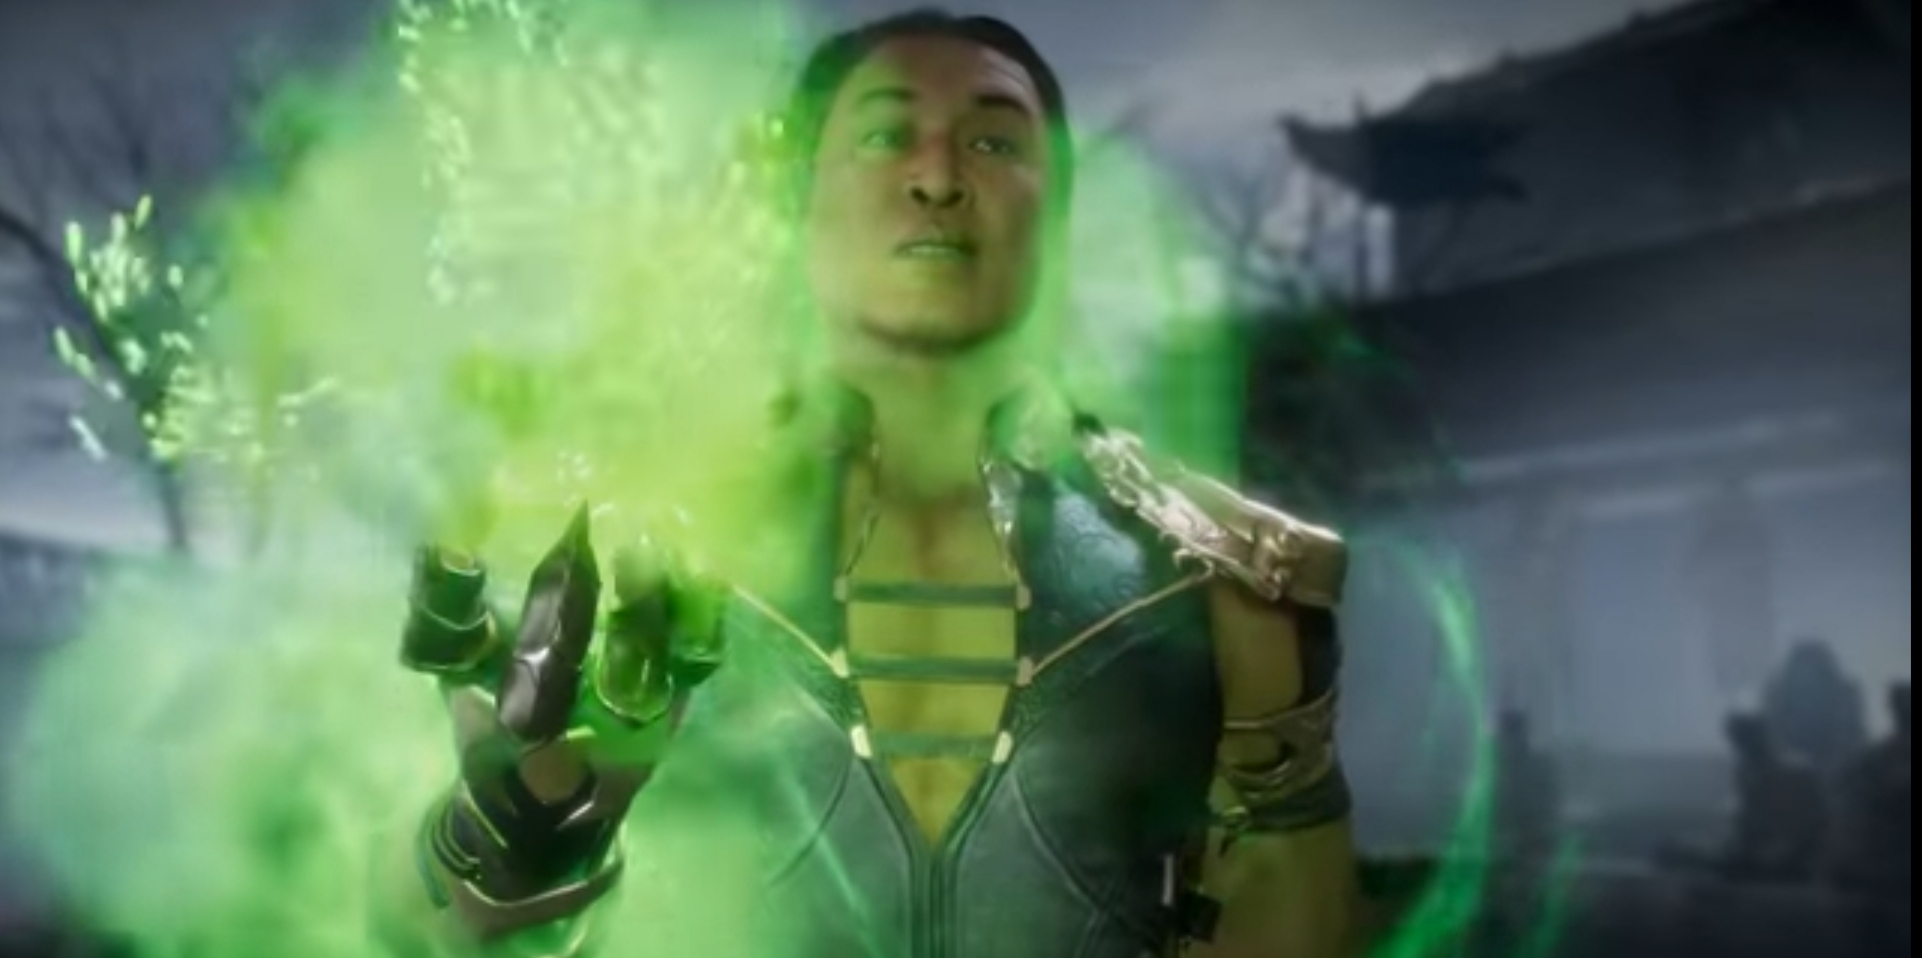 Shang Tsung Gameplay and Spawn Confirmed In First Mortal Kombat 11 DLC!